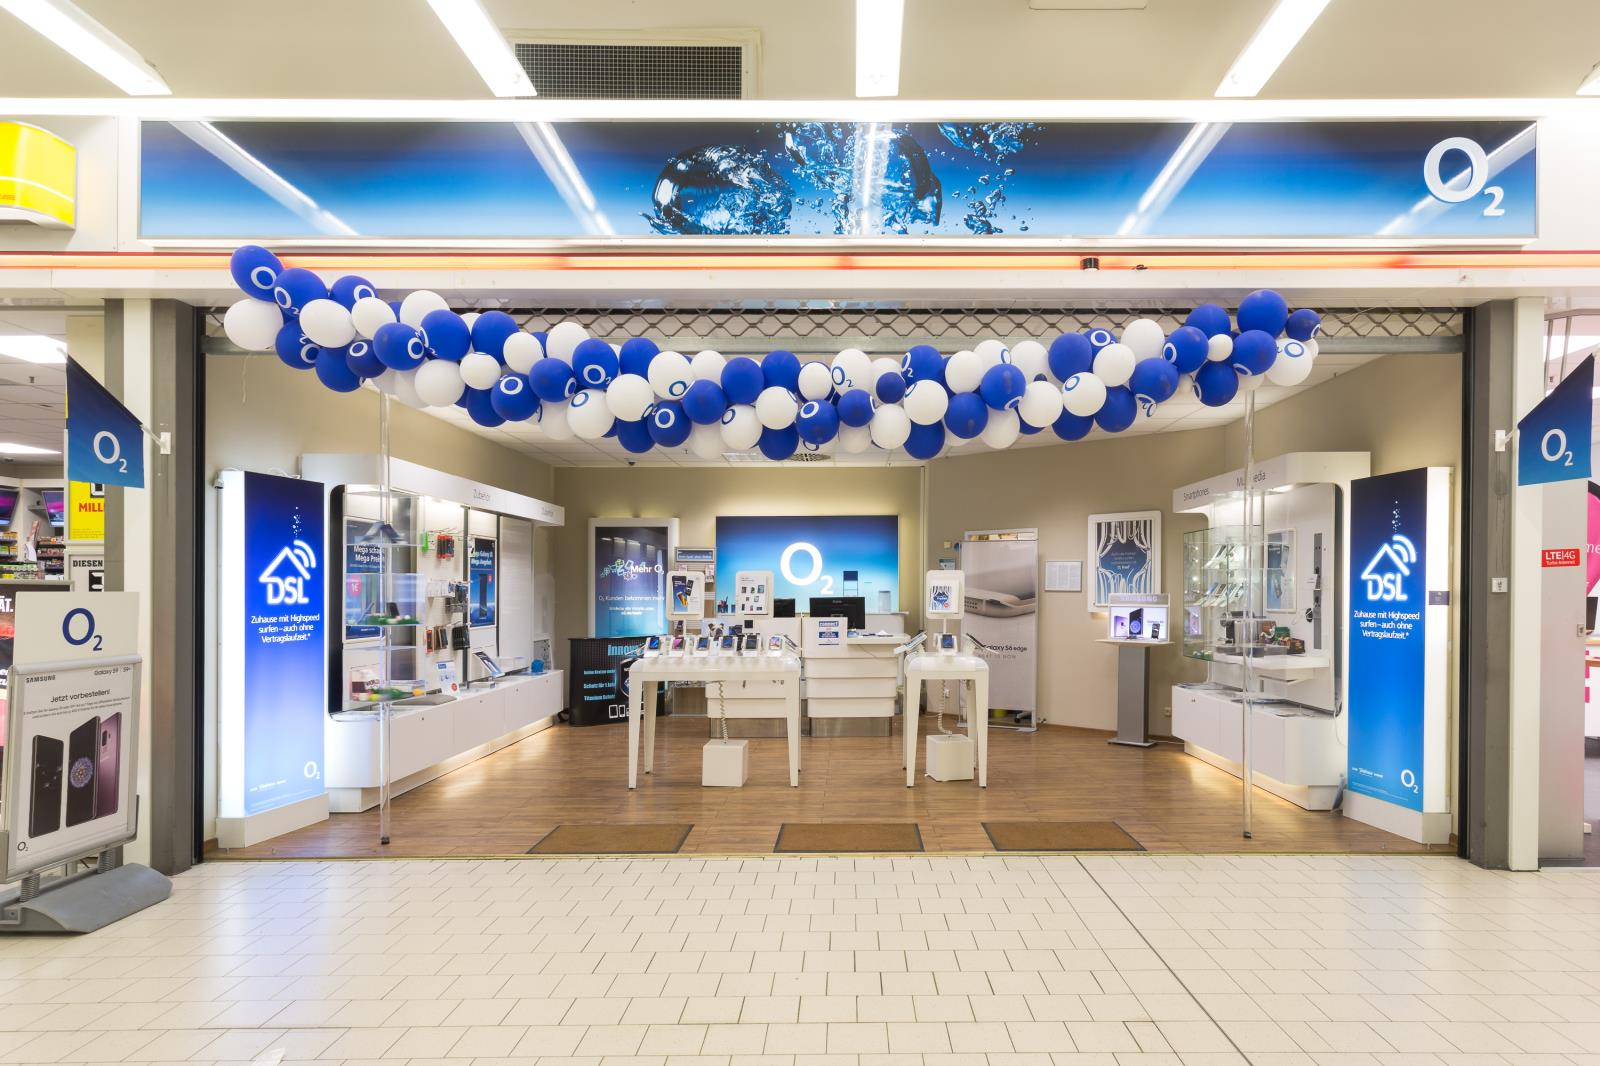 o2 Shop, Rundestr. 5 in Hannover